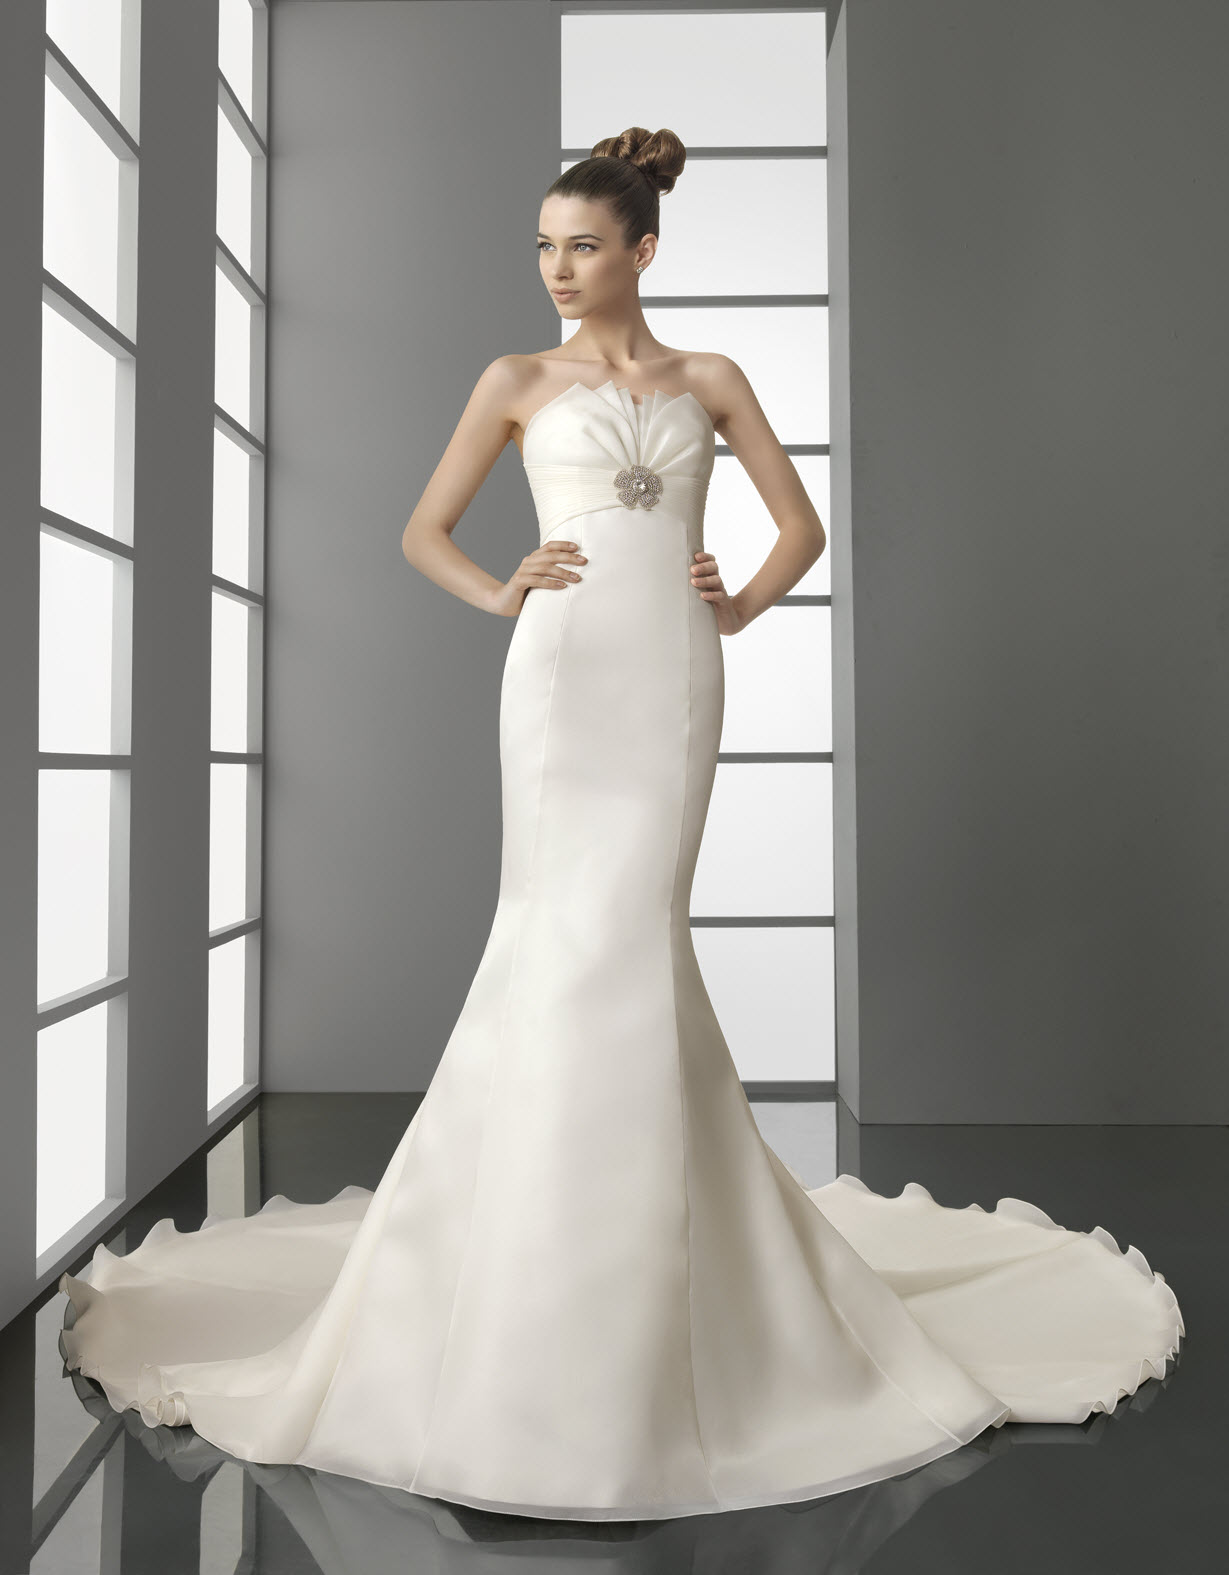 Ivory Lace Mermaid Wedding Dresses images